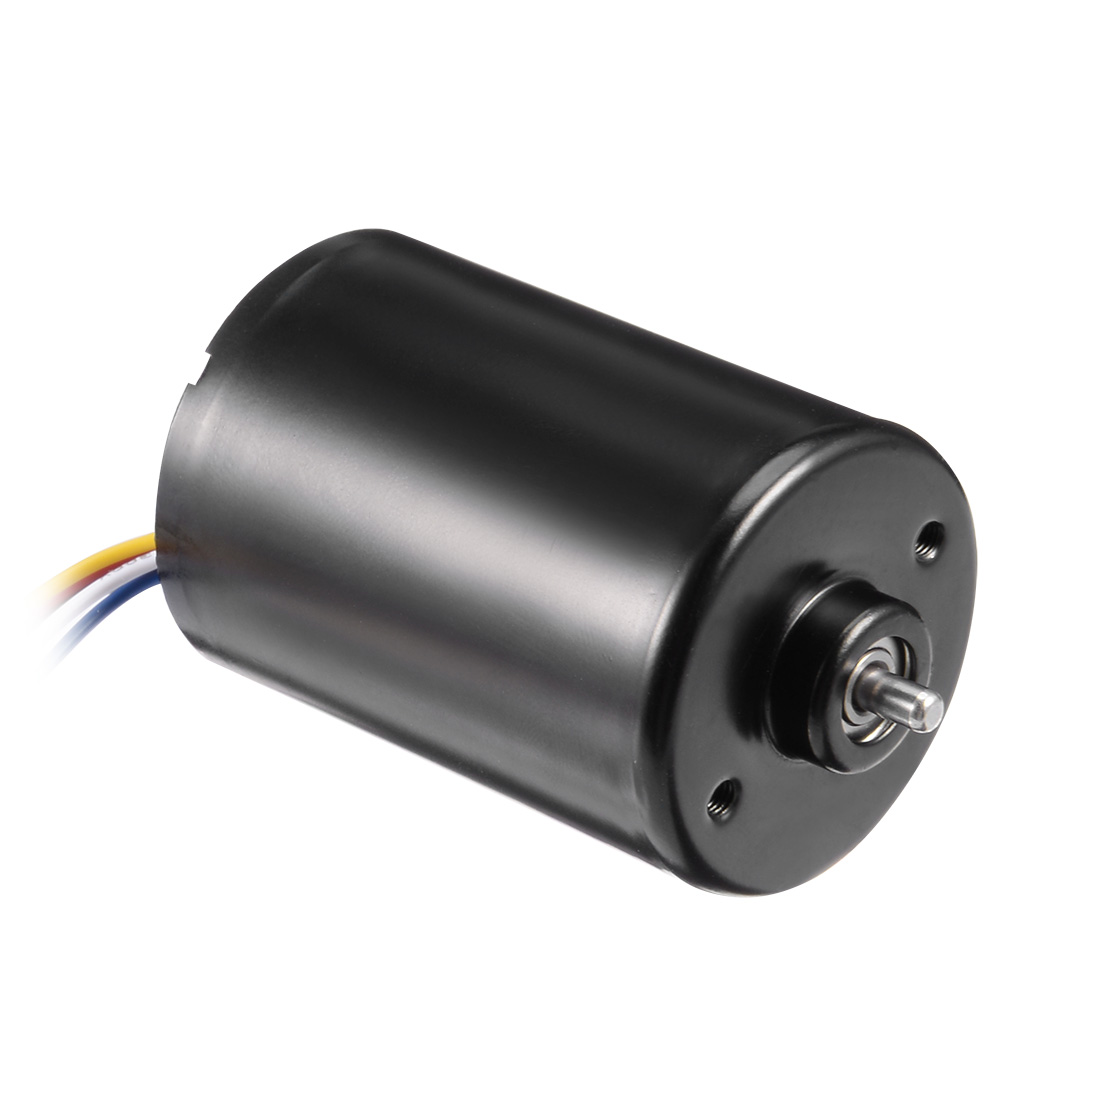 Micro Motor DC 24V 7900RPM 5 Wire High Speed Electric Motor for DIY Toy Cars